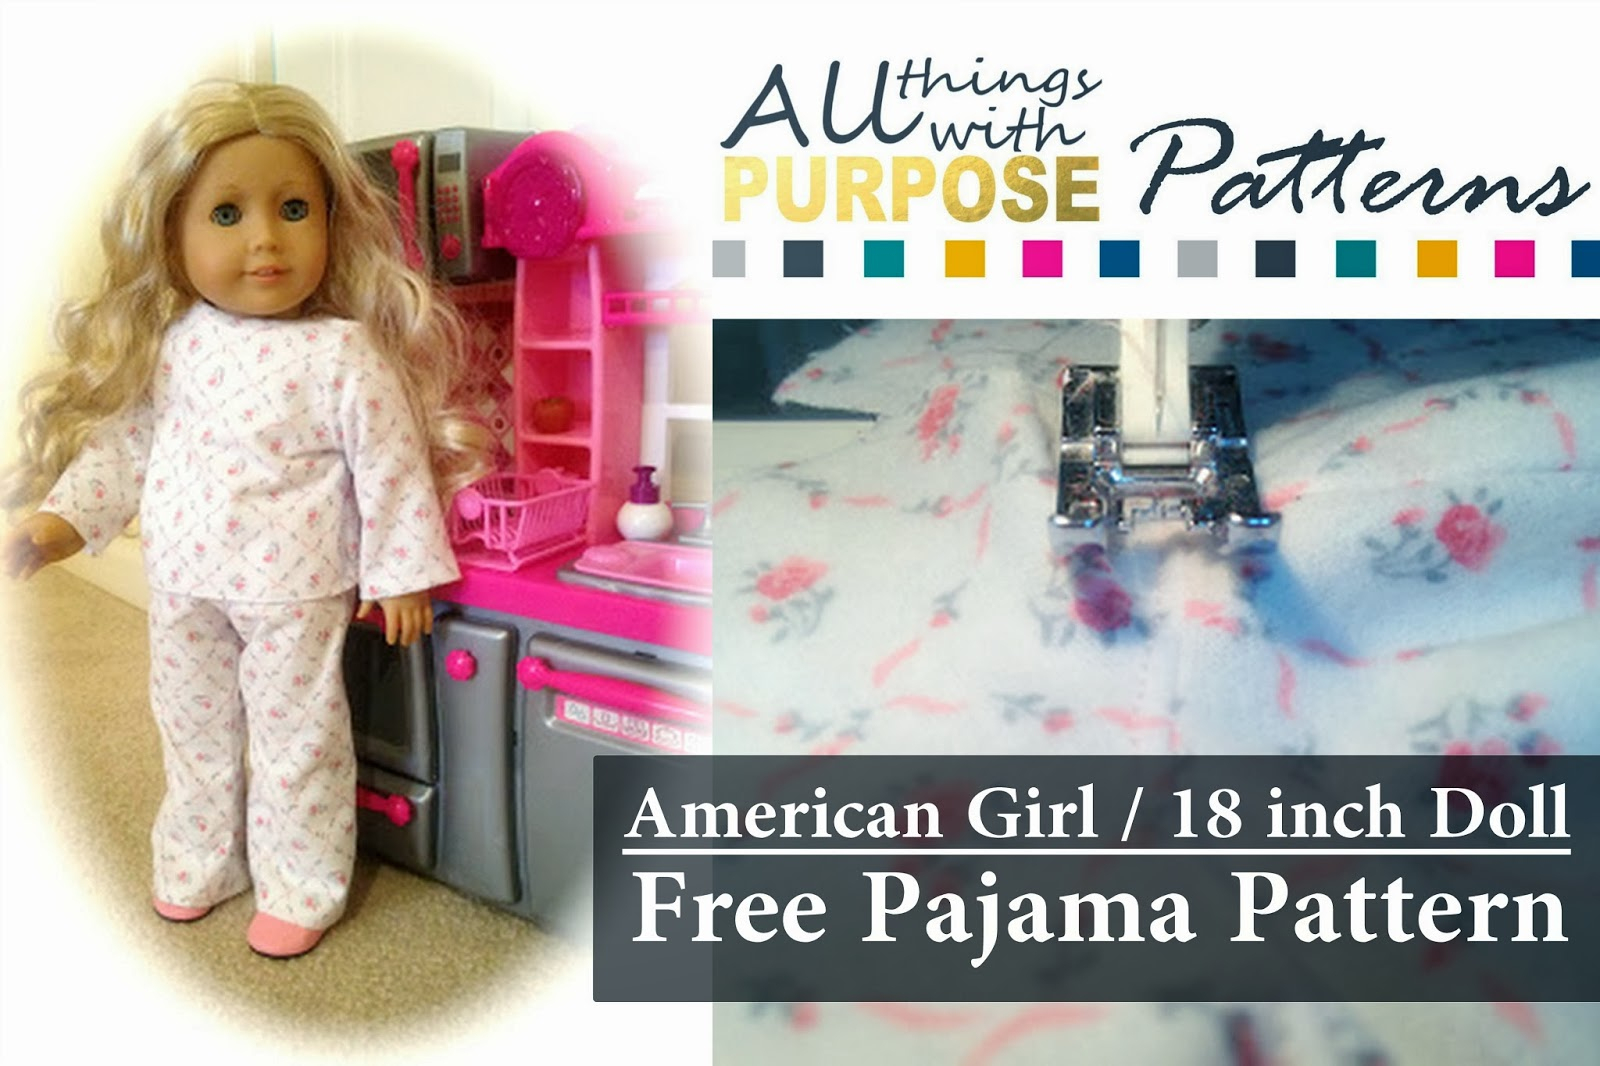 American Girl Doll Free Pajamas Pattern - American Girl Doll Clothes Patterns Free Printable